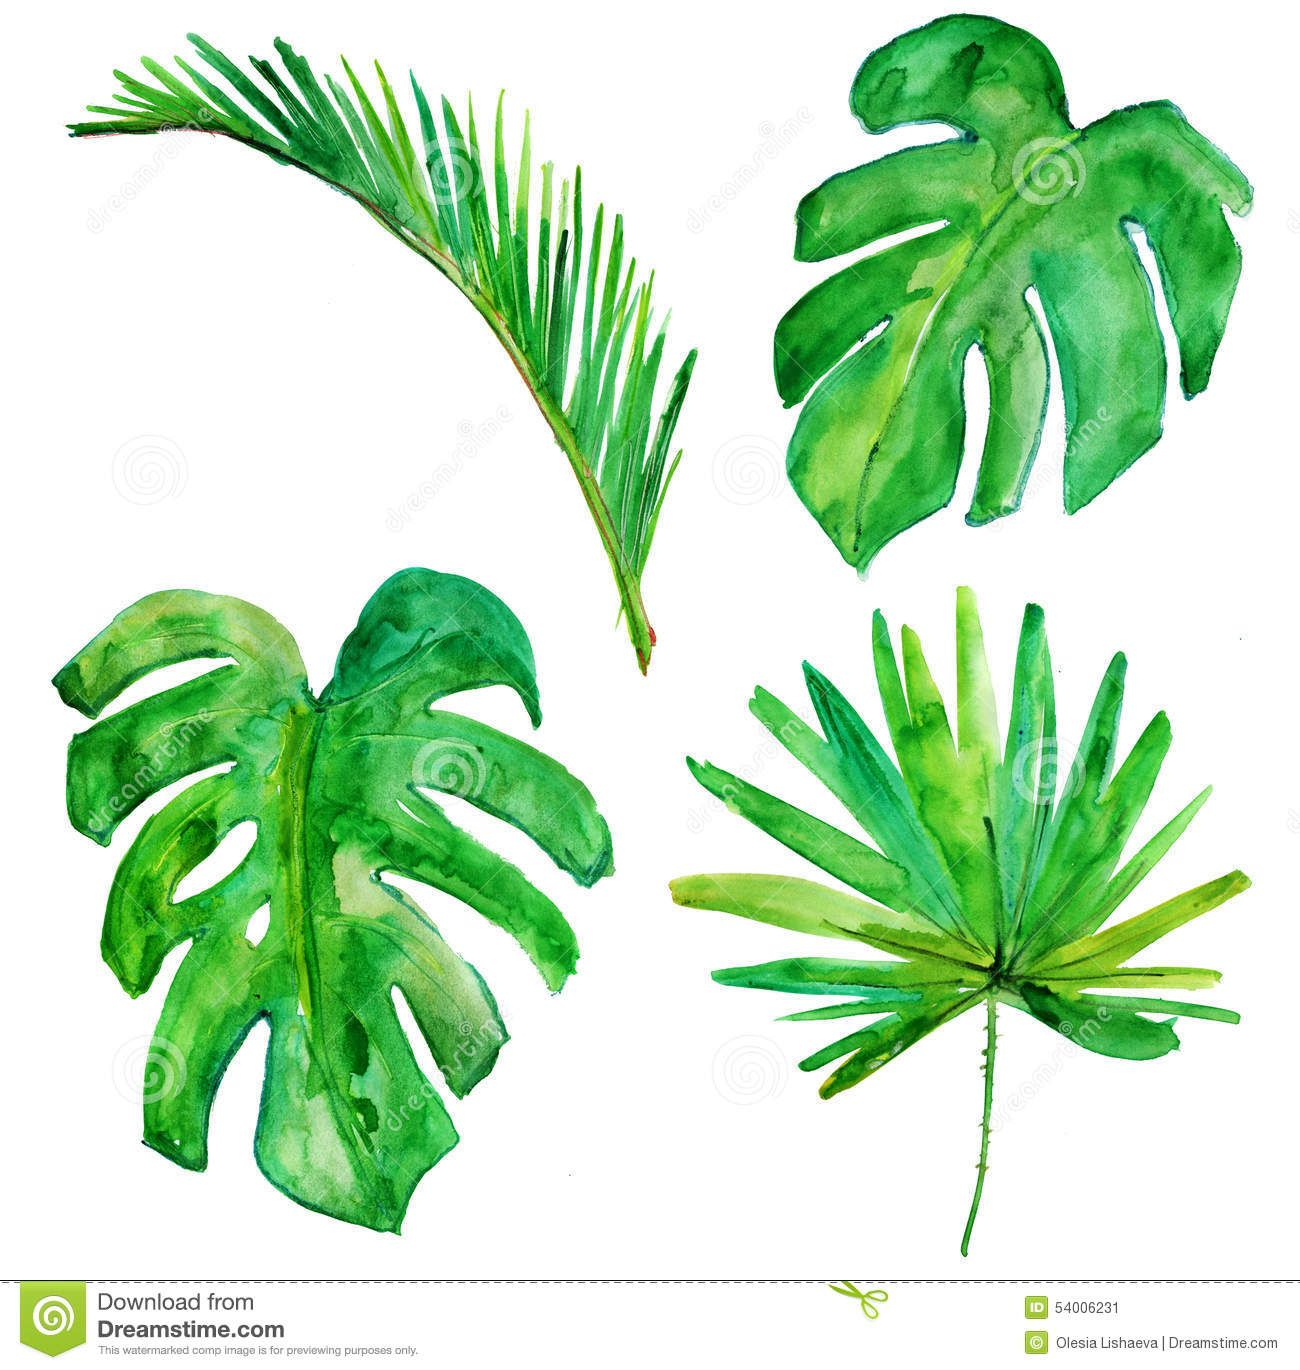 Palm Tree clipart paint #8 in 2019.